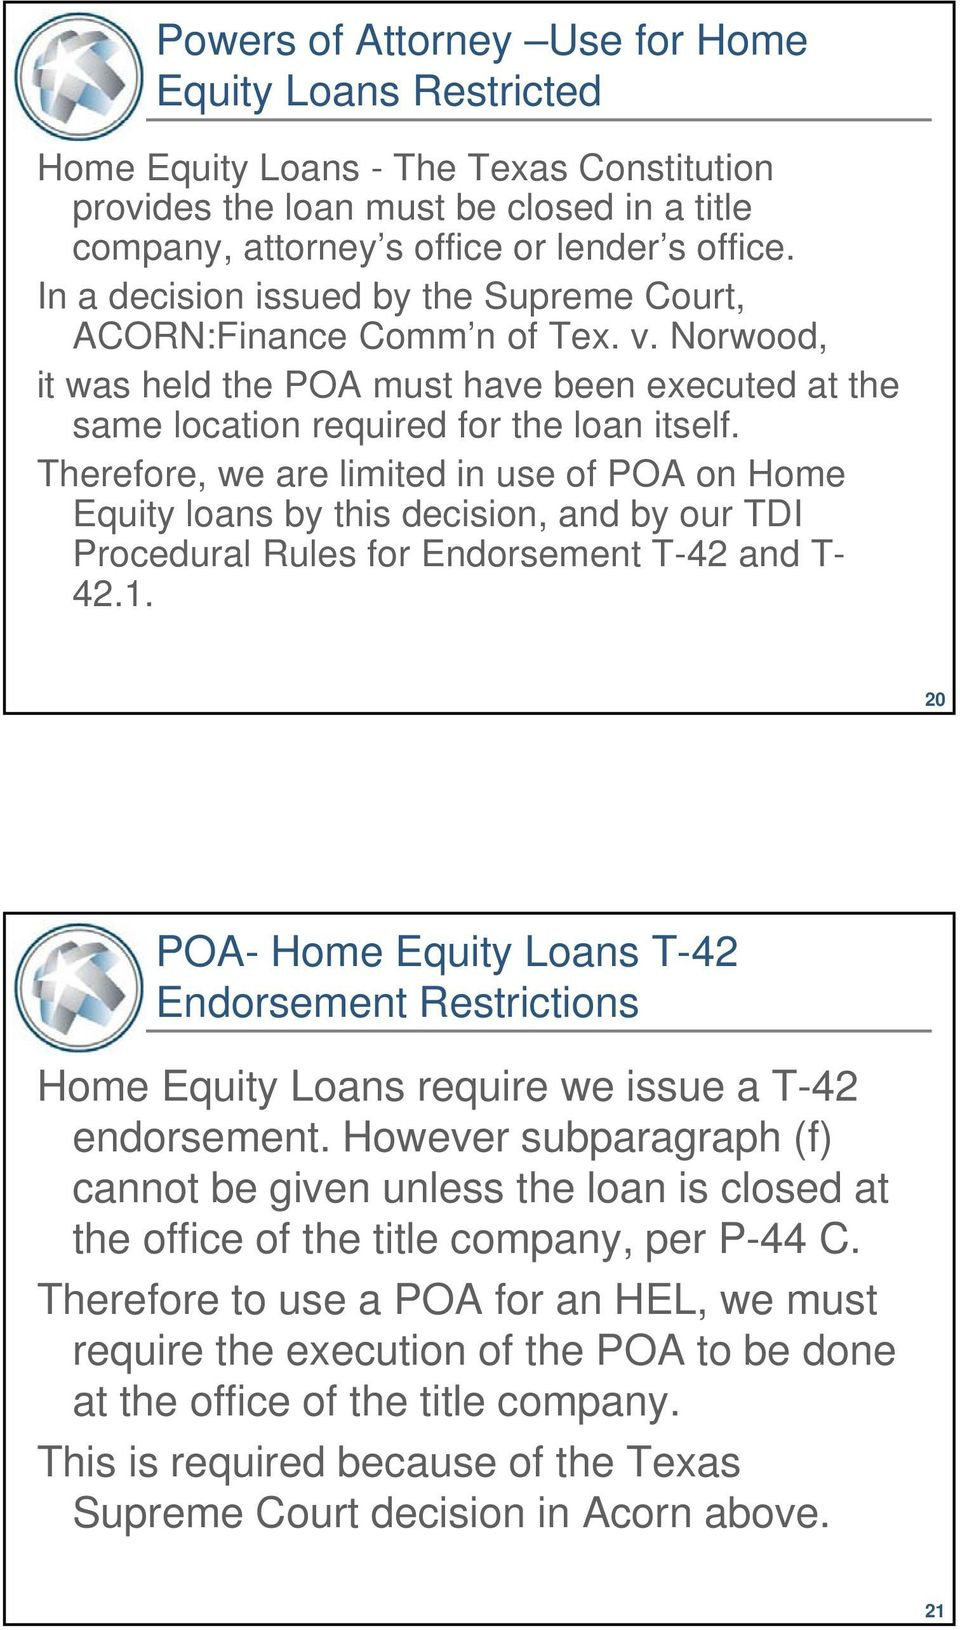 Therefore, we are limited in use of POA on Home Equity loans by this decision, and by our TDI Procedural Rules for Endorsement T-42 and T- 42.1.